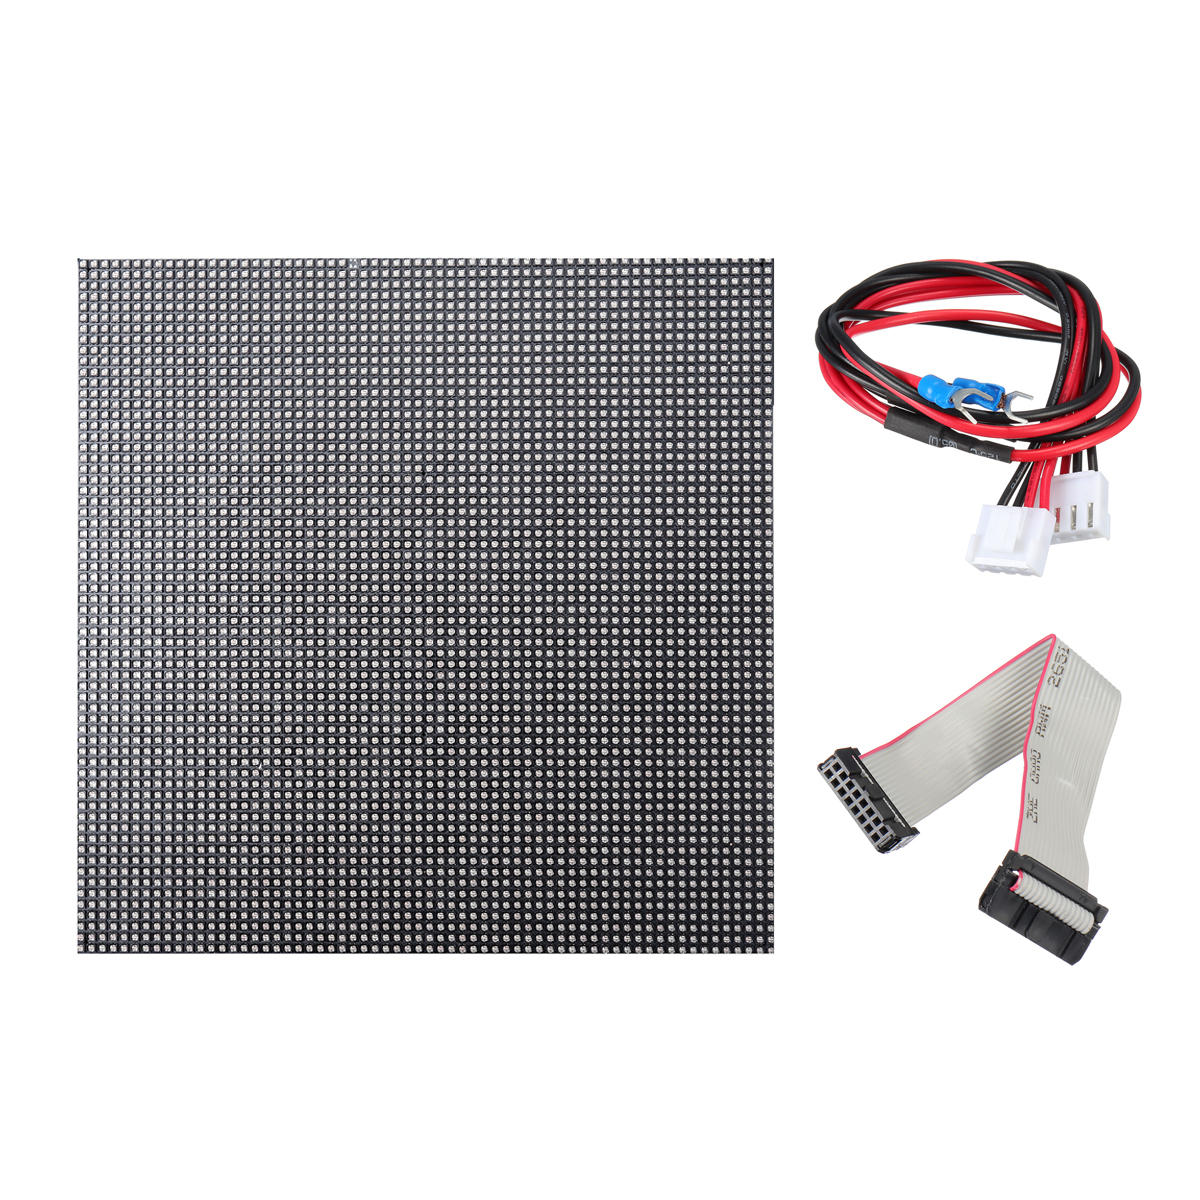 P2.5 LED Display HD Full Color Screen 5V 160*160 LED Display Module Horizontal Scrolling Geekcreit for Arduino - products that work with official Arduino boards